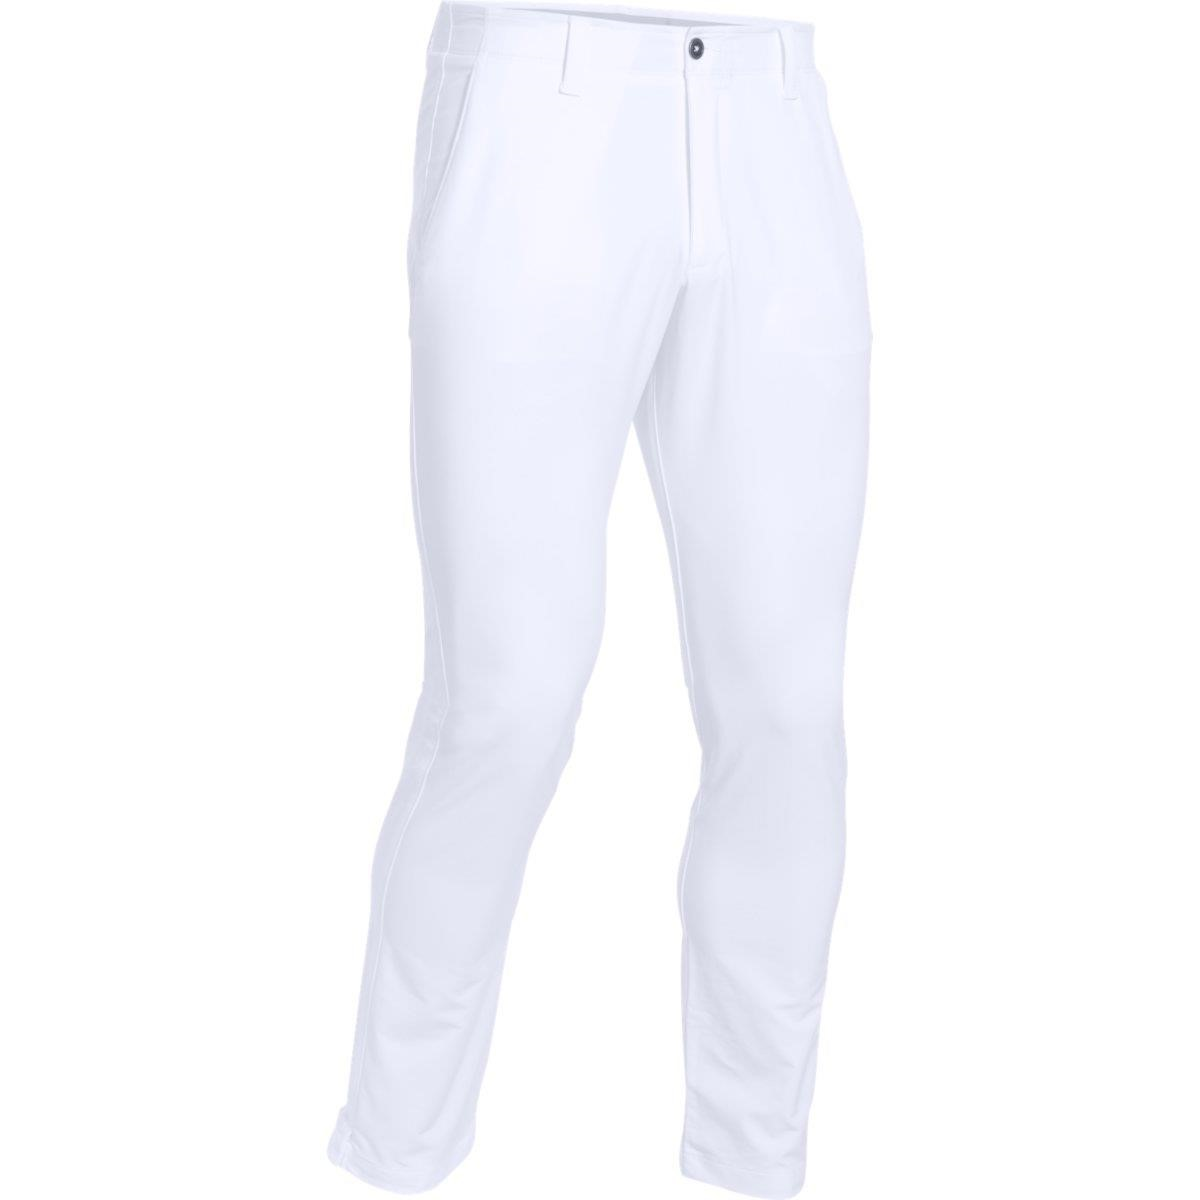 Under Armour Matchplay Tapered spodnie męskie